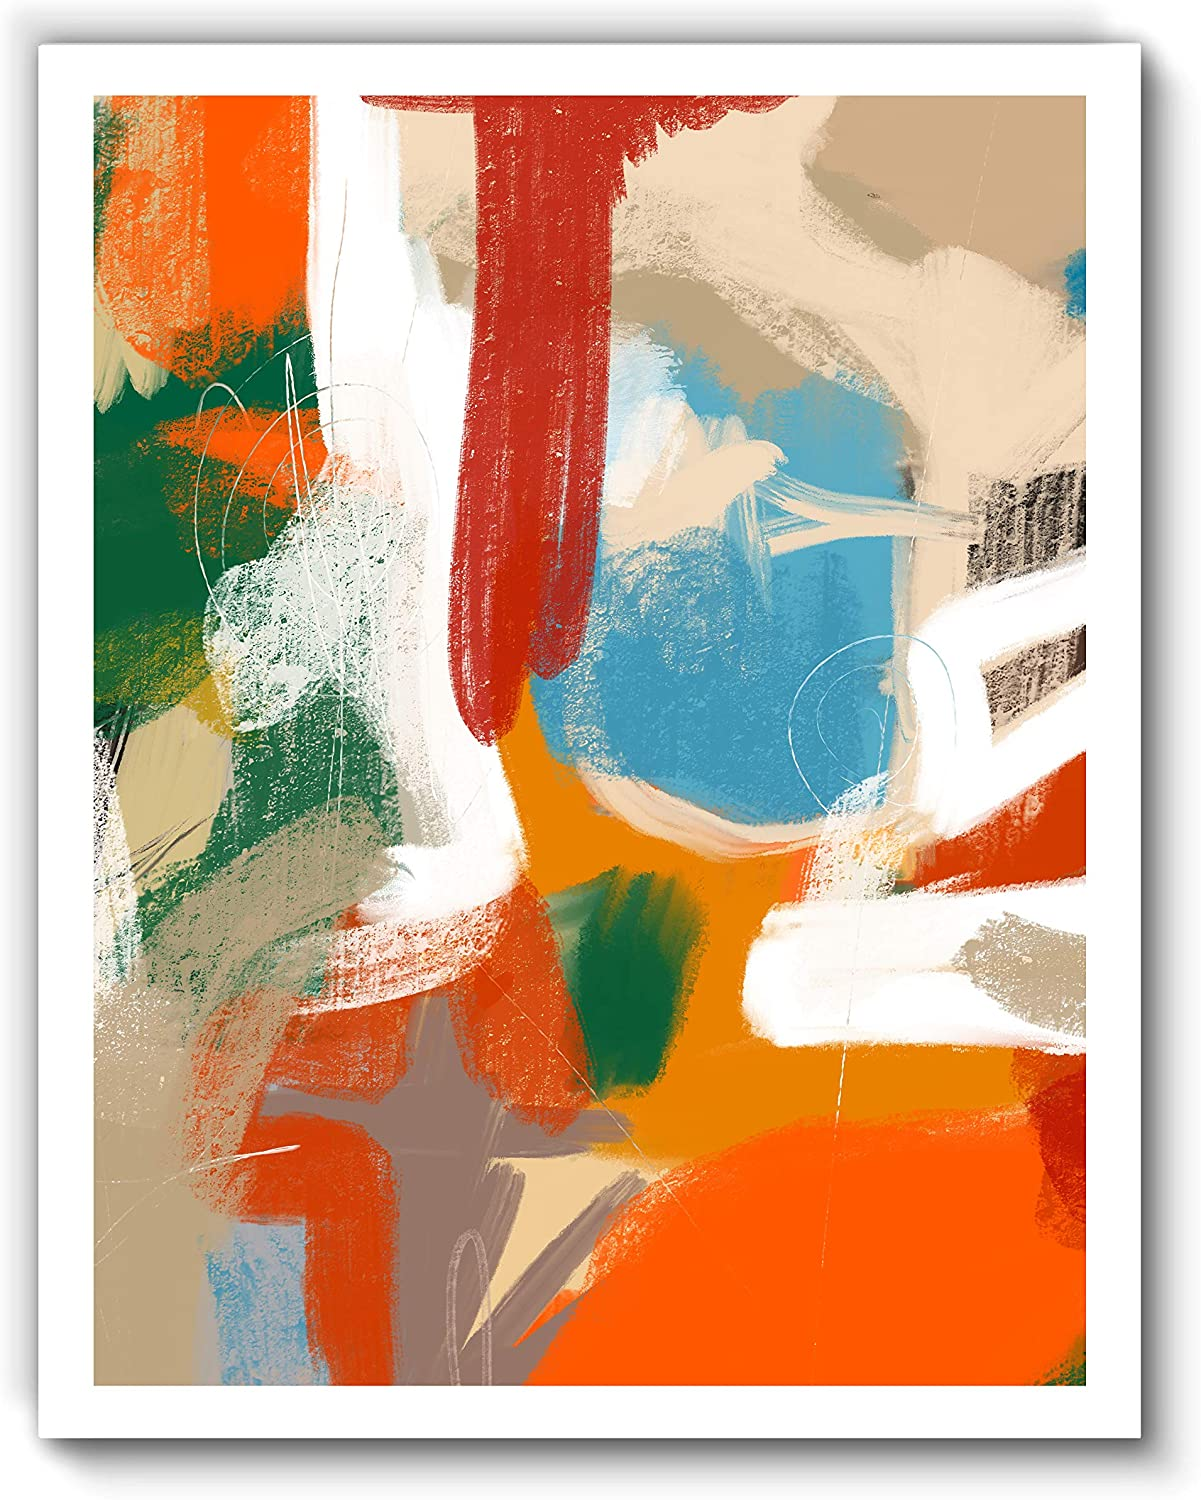 Printsmo, Summer Rain, Colorful Original Abstract Modern Contemporary Art Print, Minimalist Wall Art for Bedroom and Home Decor, Boho Art Print Poster, Wall Decor 11x14 Inches, Unframed